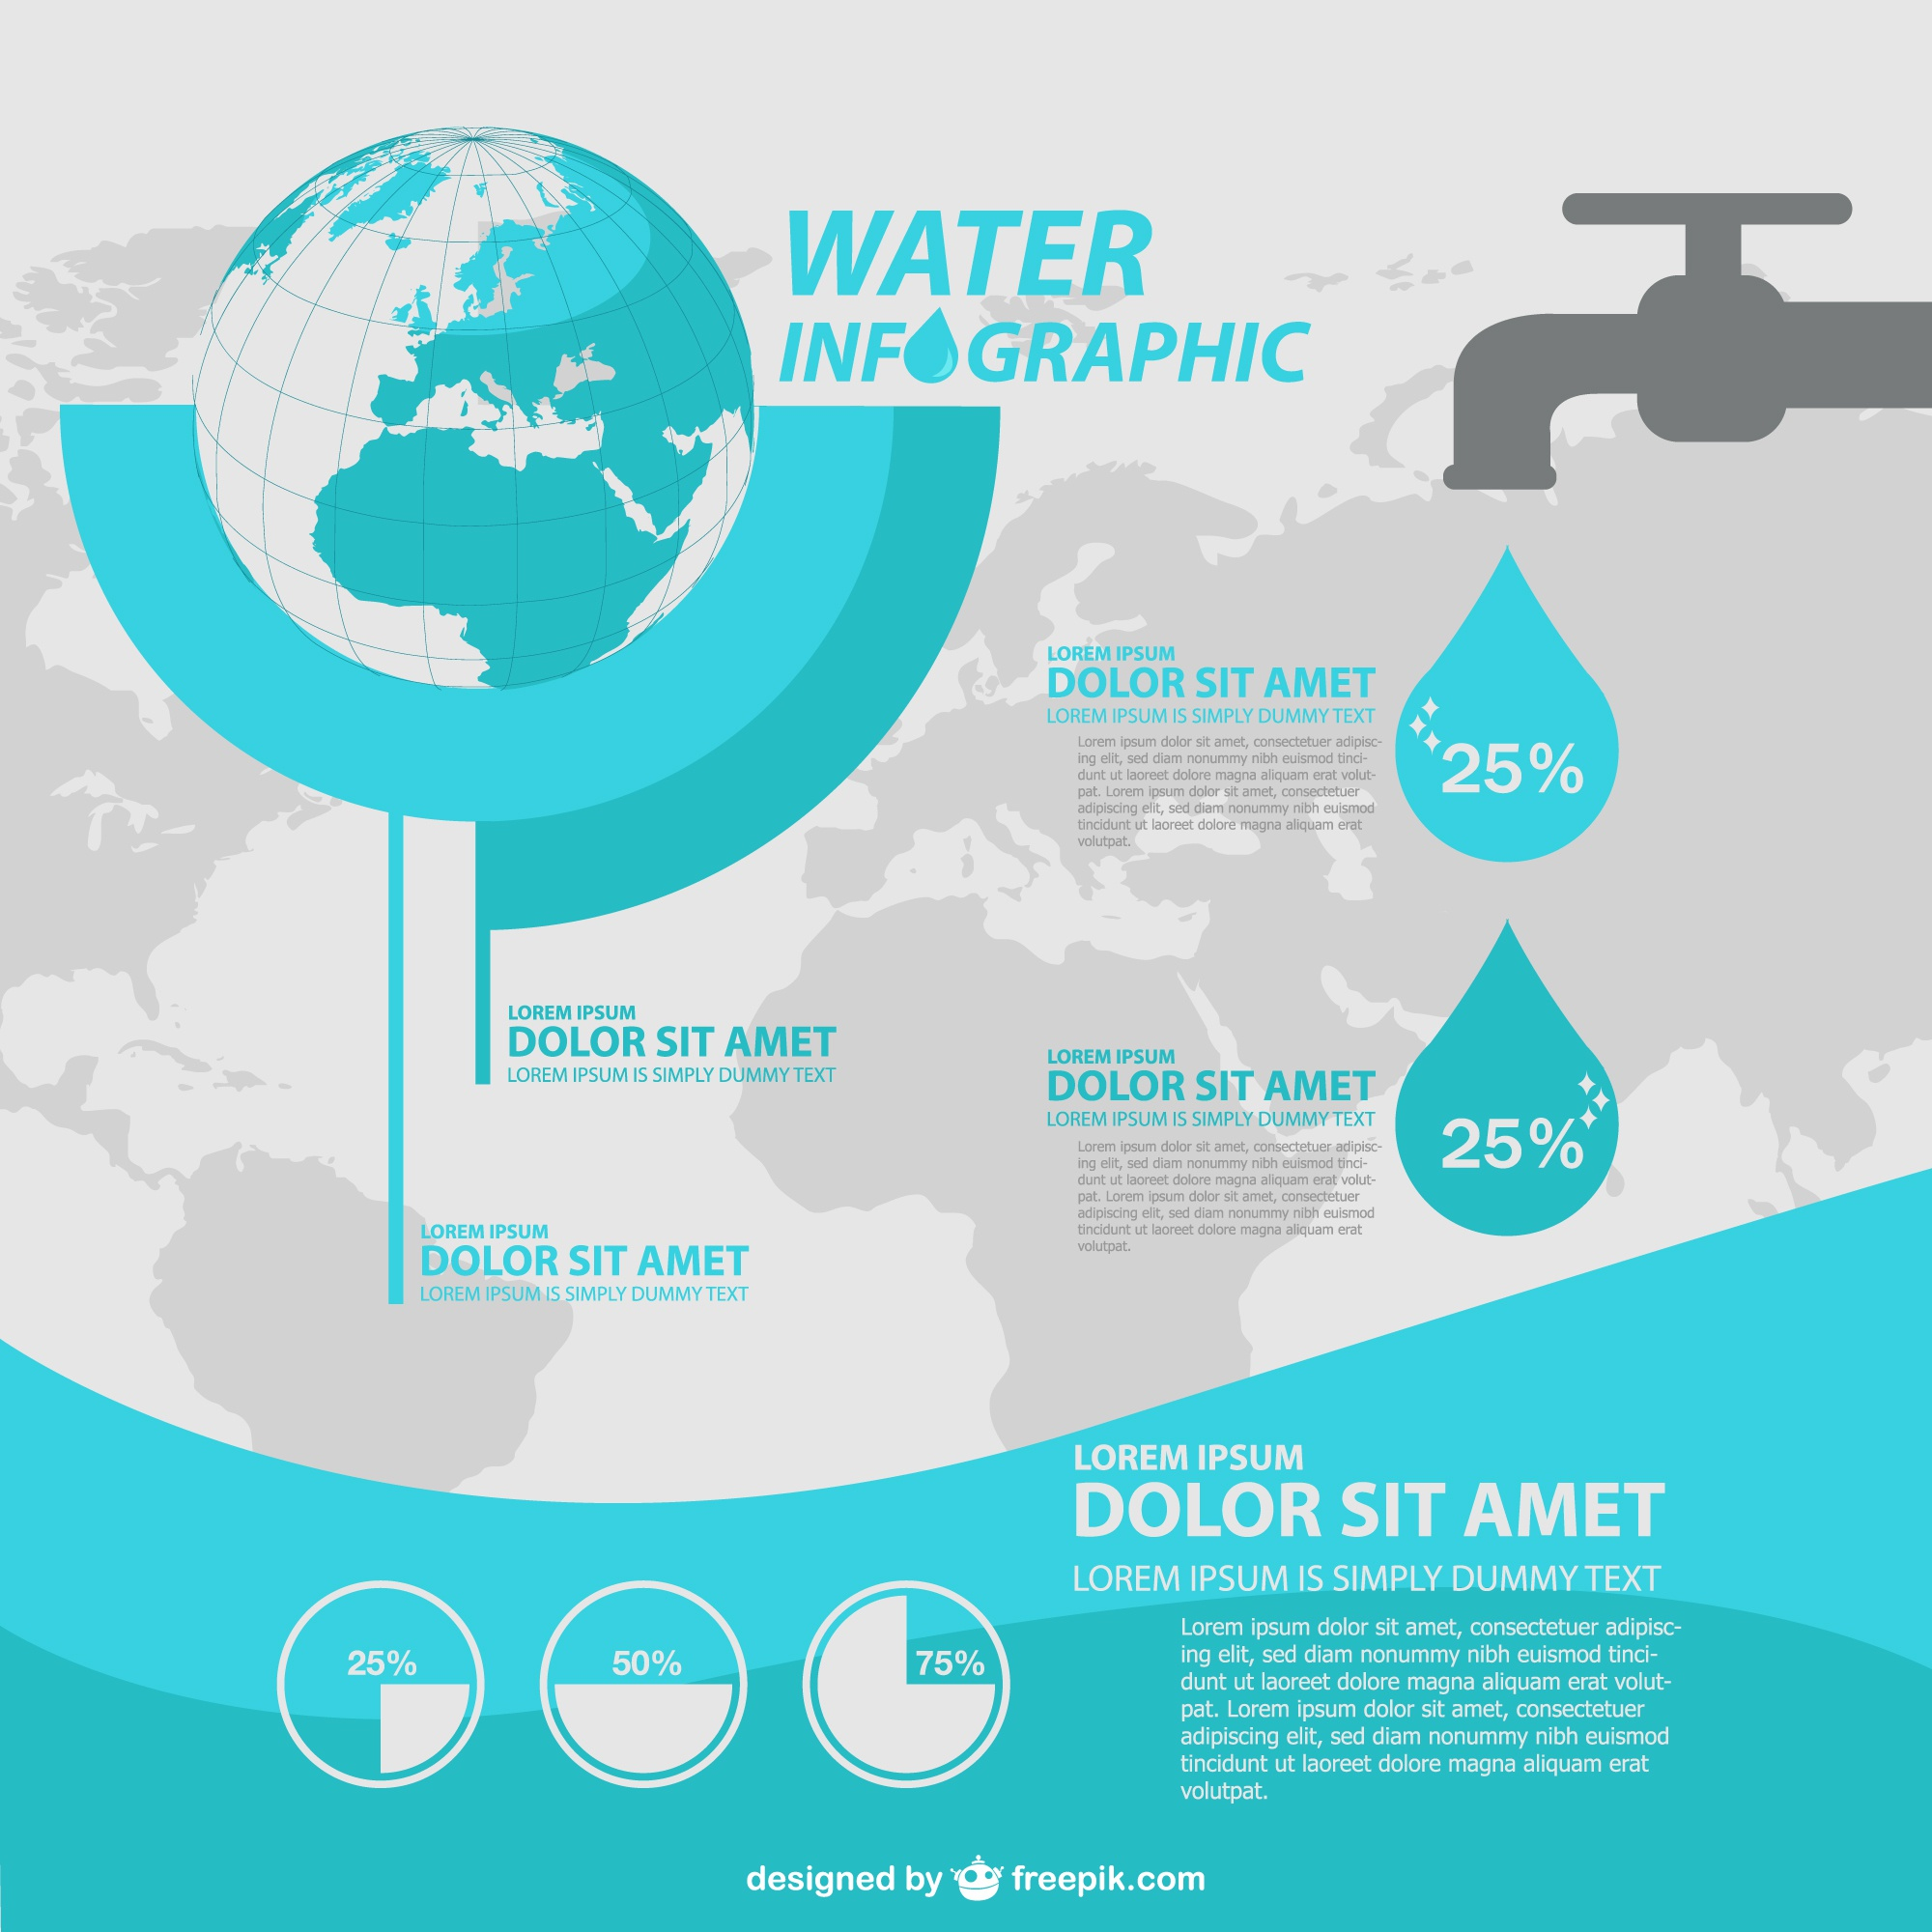 Water infographic with a tap